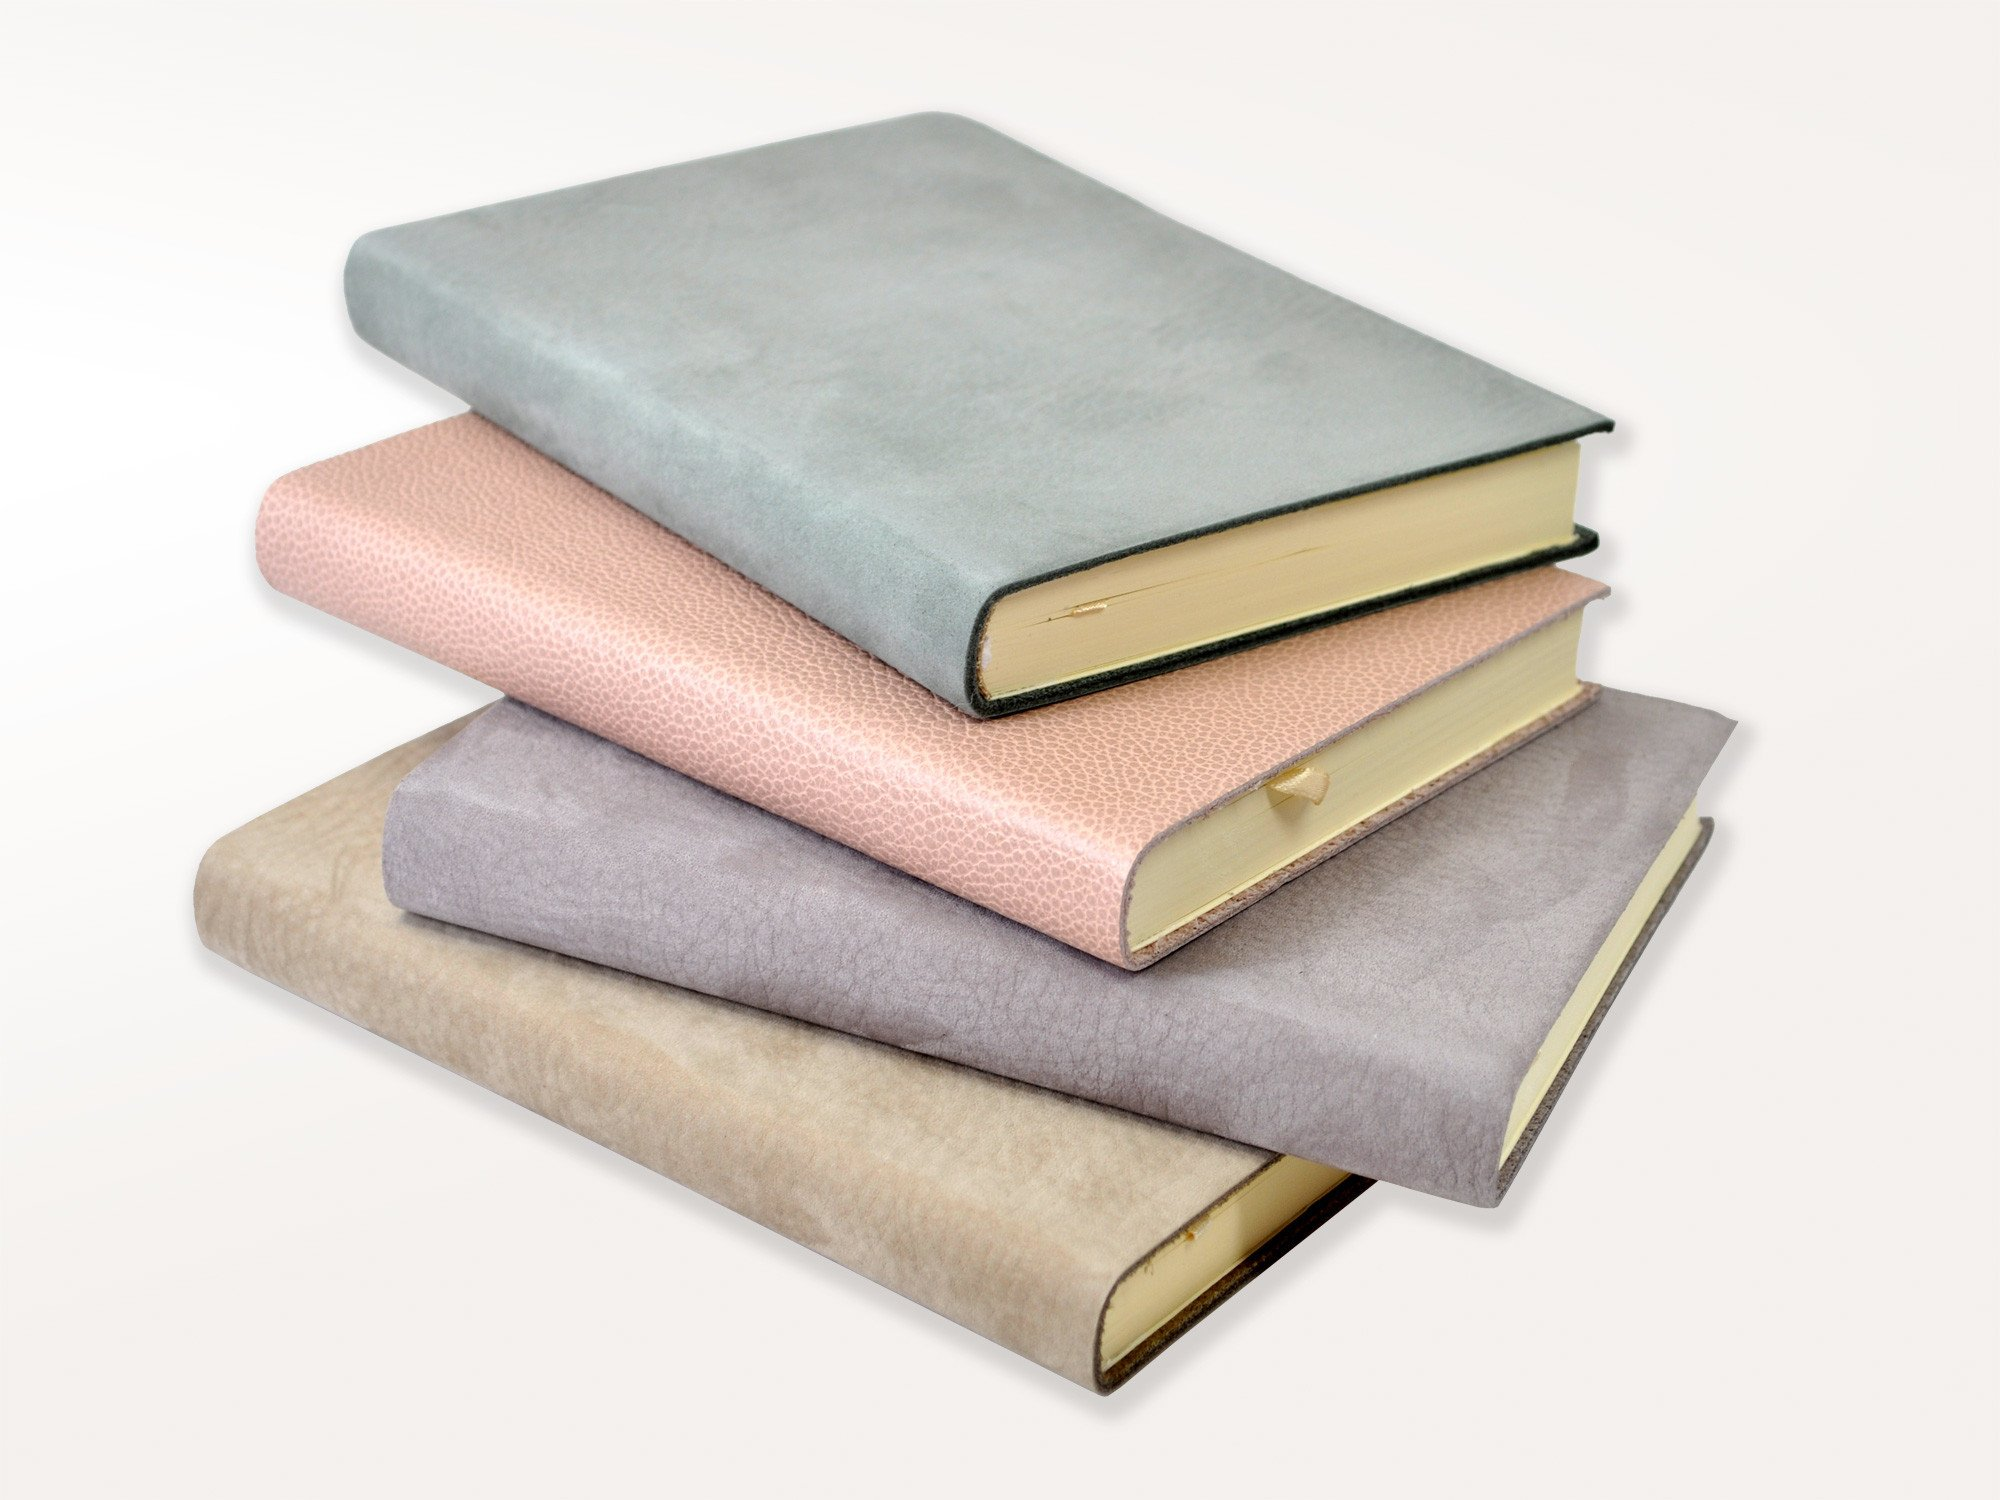 Journals and Books - I am a huge fan of writing my prayers out to God and can always use a new journal. My favorites are flexible genuine leather bound for flexibility obviously but also durability and adds a little value! I find that I journal more when I like the journal itself! These journals are from Etsy and are around $36.If not a journal, BOOKS! Everyone has different interests so look for resources that you think that person would be interested in! There are several books I could recommend but a great place to start with hormones is by checking out my products page! I have a few of my favorites listed - click here to see them!Aside from hormones, I love books that teach me. Consider gifting a new Bible! We can truly find everything we need in scripture. I personally love learning about the history in the bible, how it applies to us now, and learning more about the meaning behind things in scripture. This has deepened my faith and my self help comes from knowing my Lord in a brighter light than before! Email me if you would like recs on books I use to learn with!